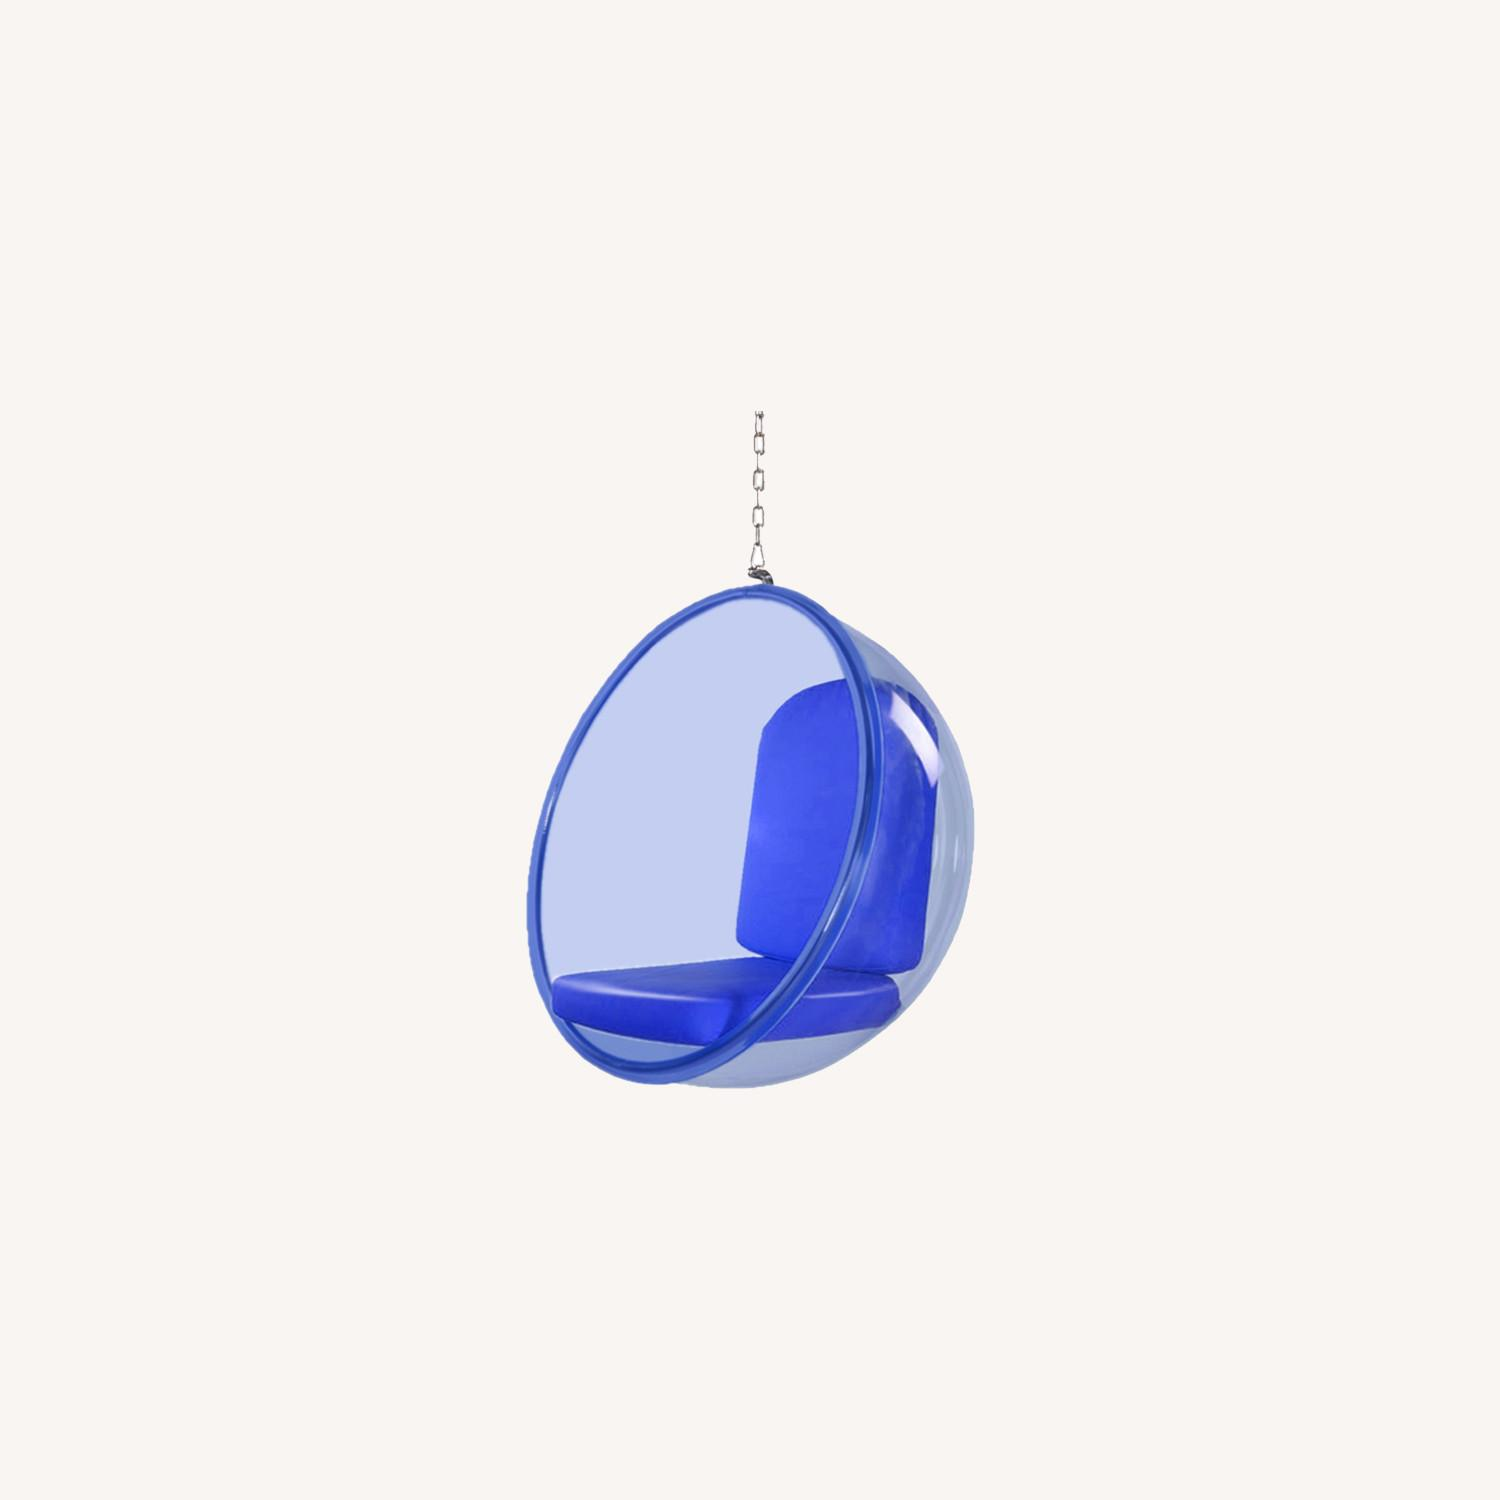 Hanging Chair In Blue Acrylic W/ PU Leather - image-3